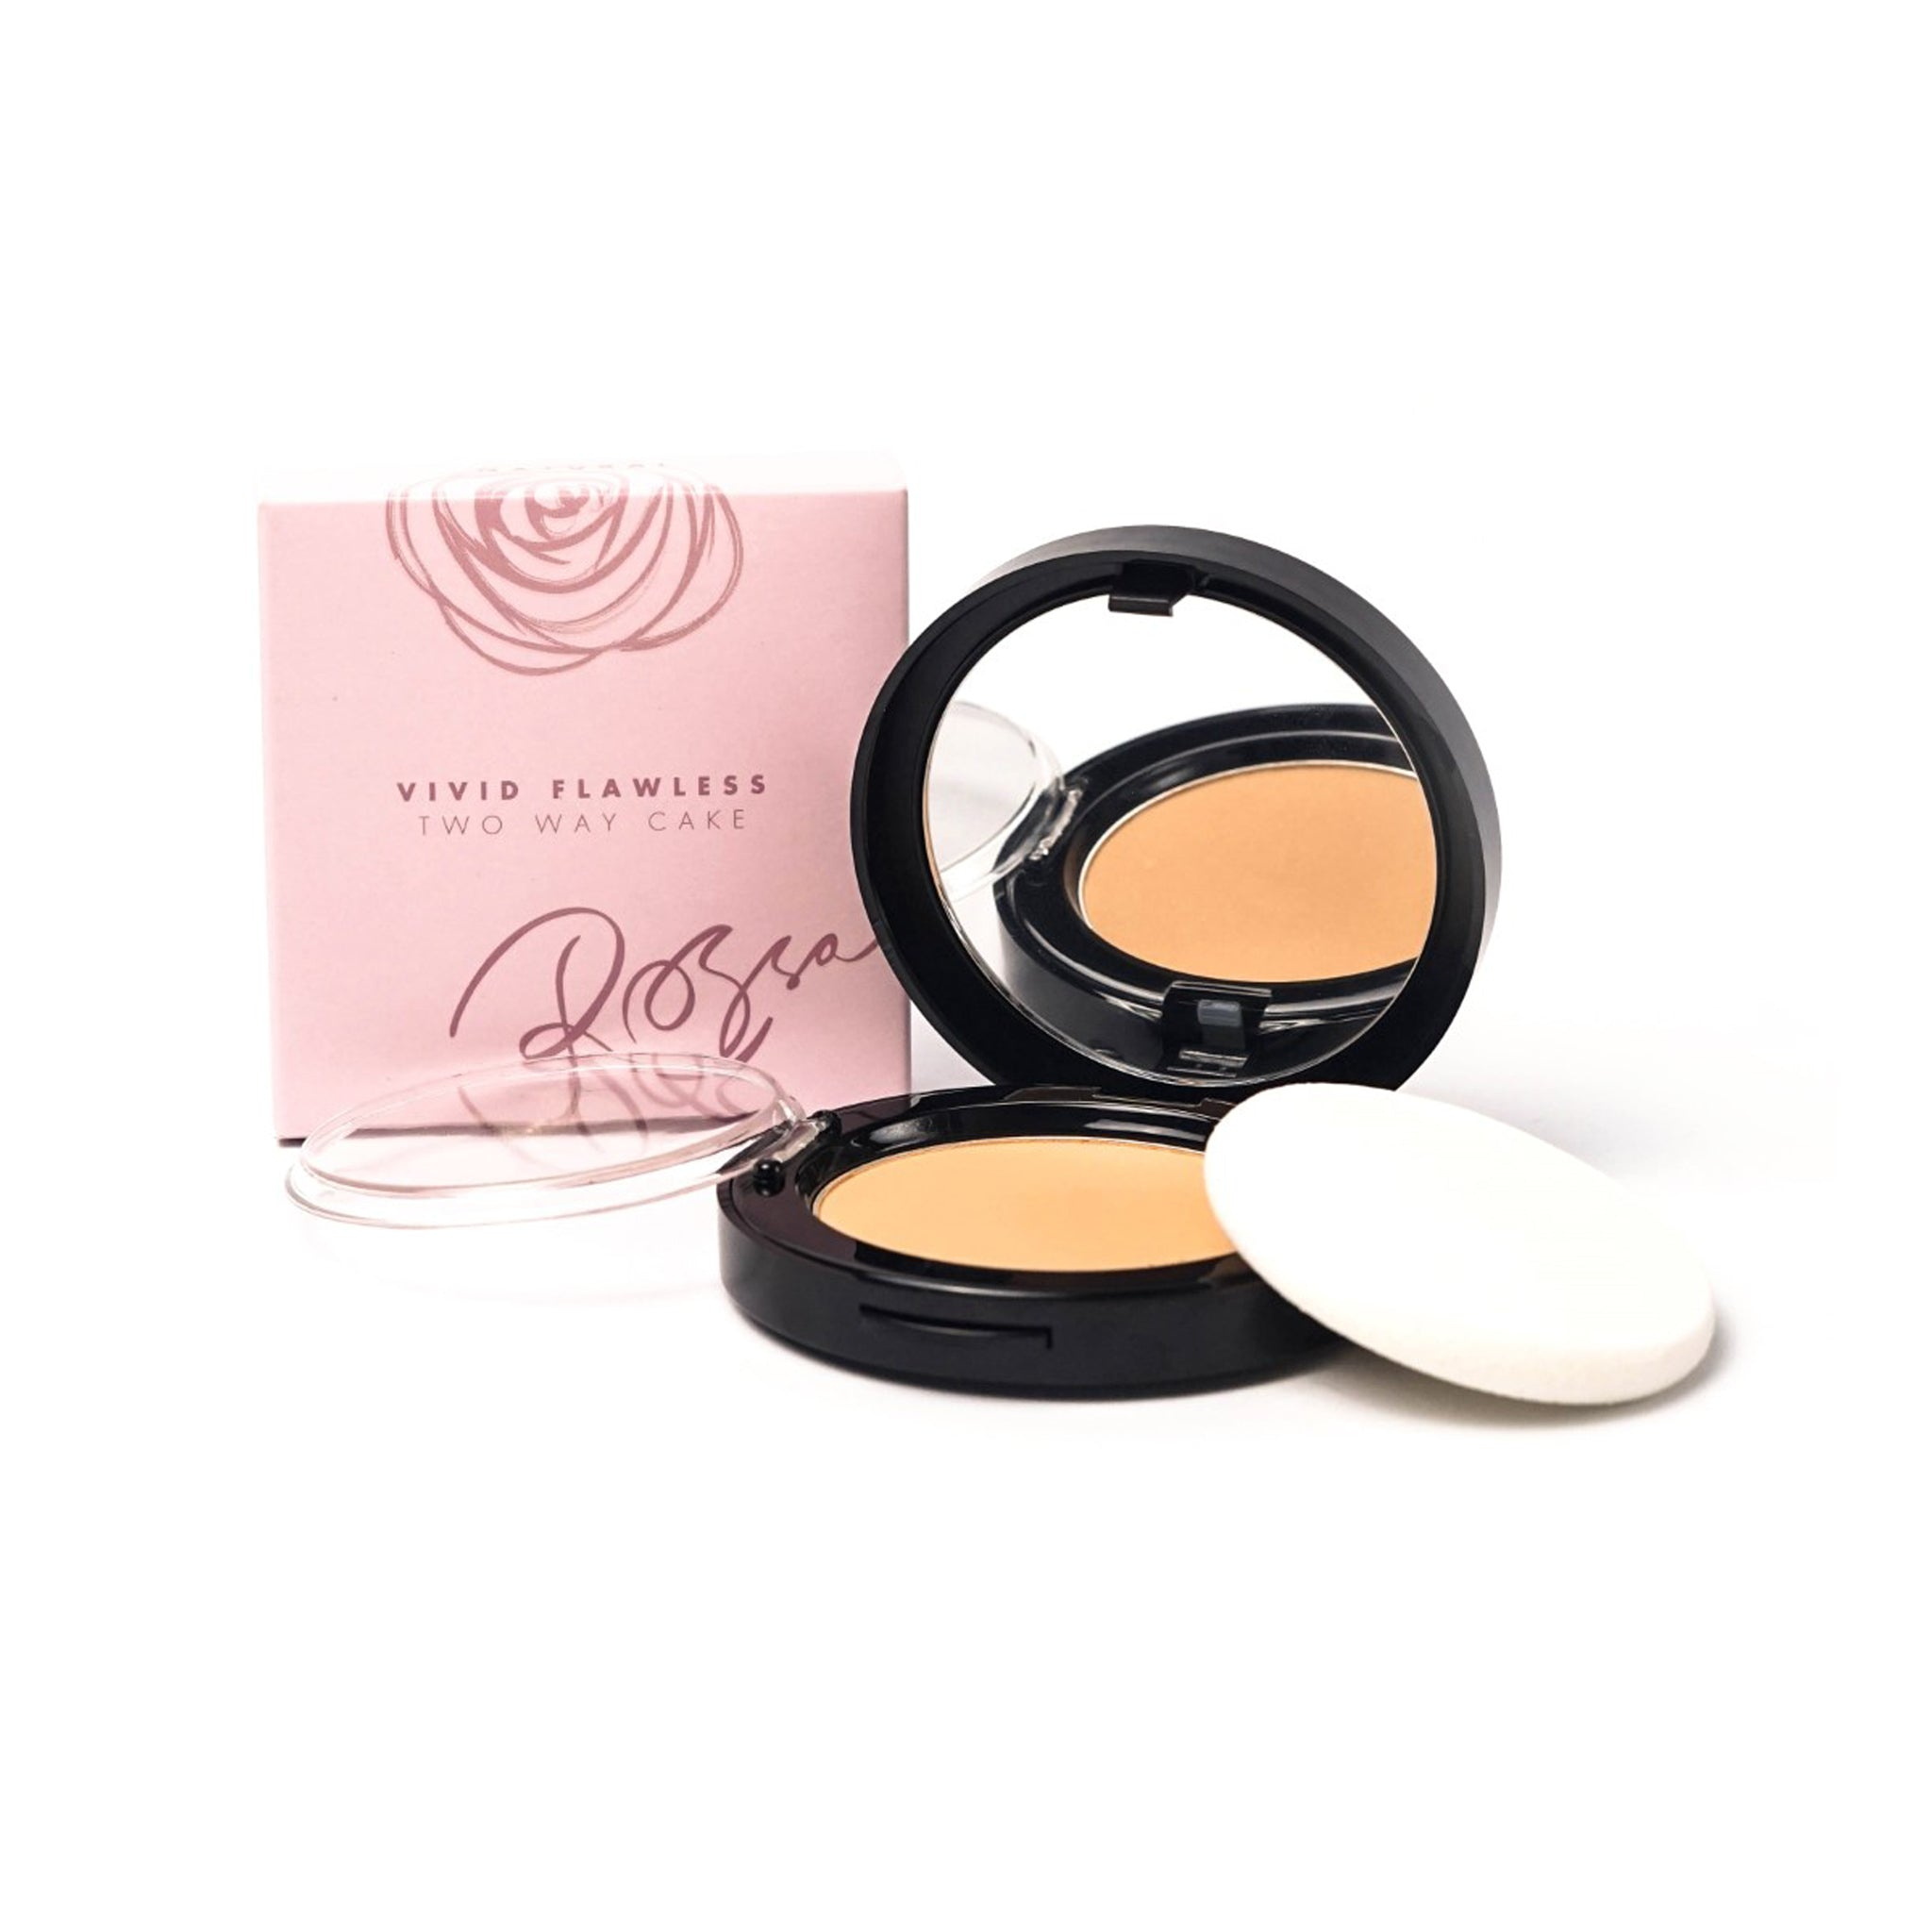 Rossa Beauty Vivid Flawless Two Way Cake - Natural